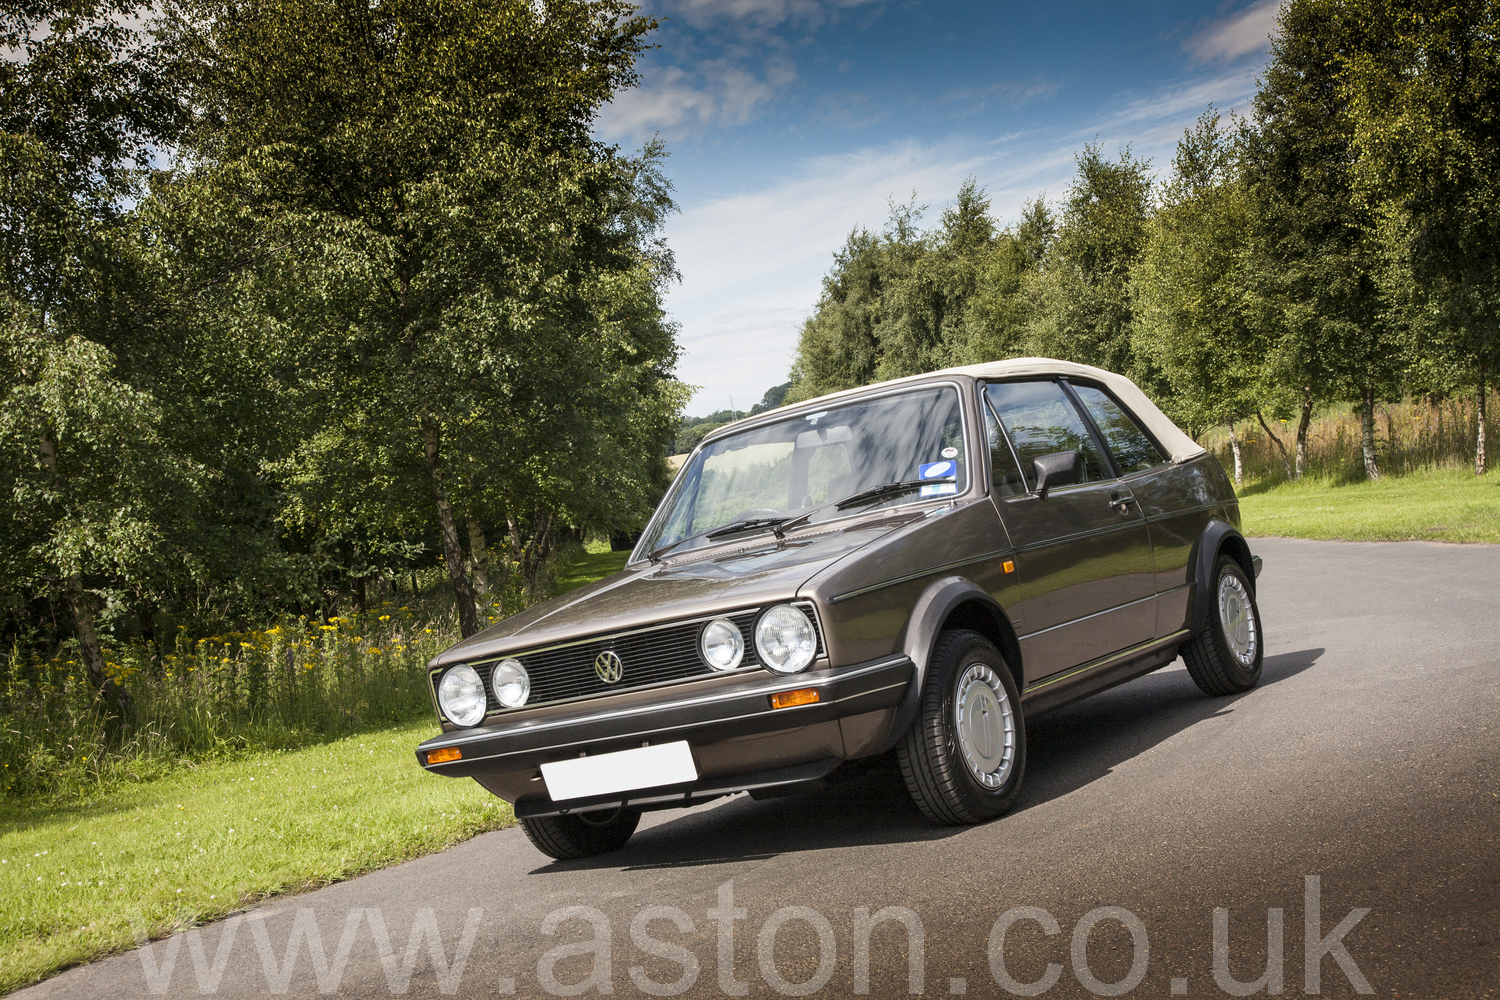 1987 Vw Golf Convertible For Sale From Aston Workshop Aw260717